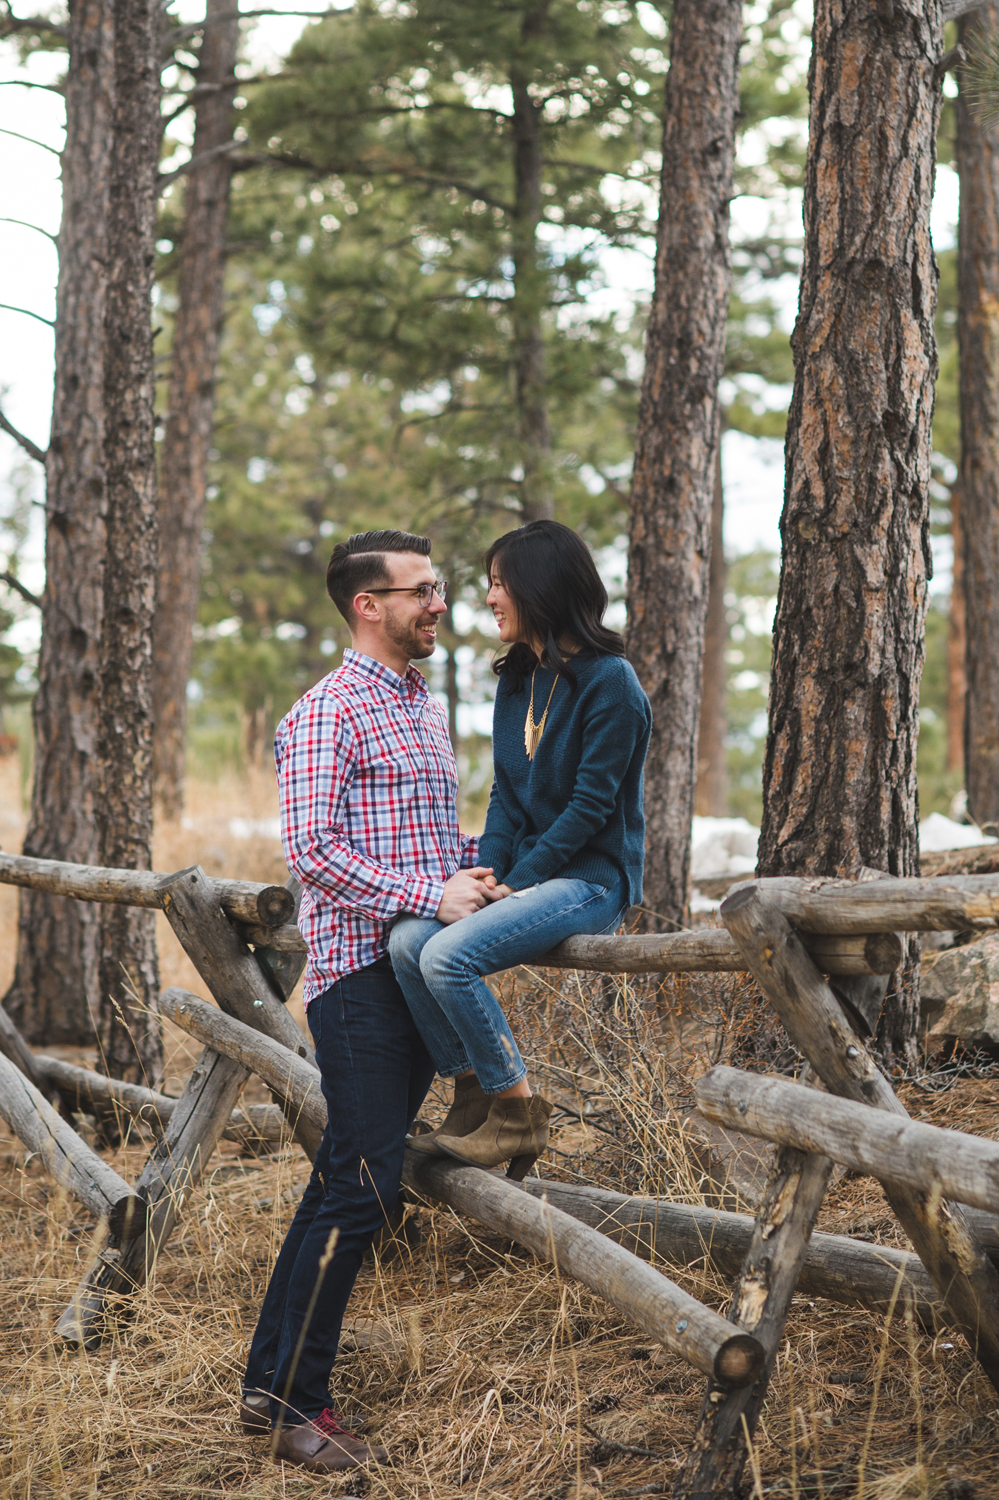 TiffanyandMark_Engaged_0568_squarespace.jpg